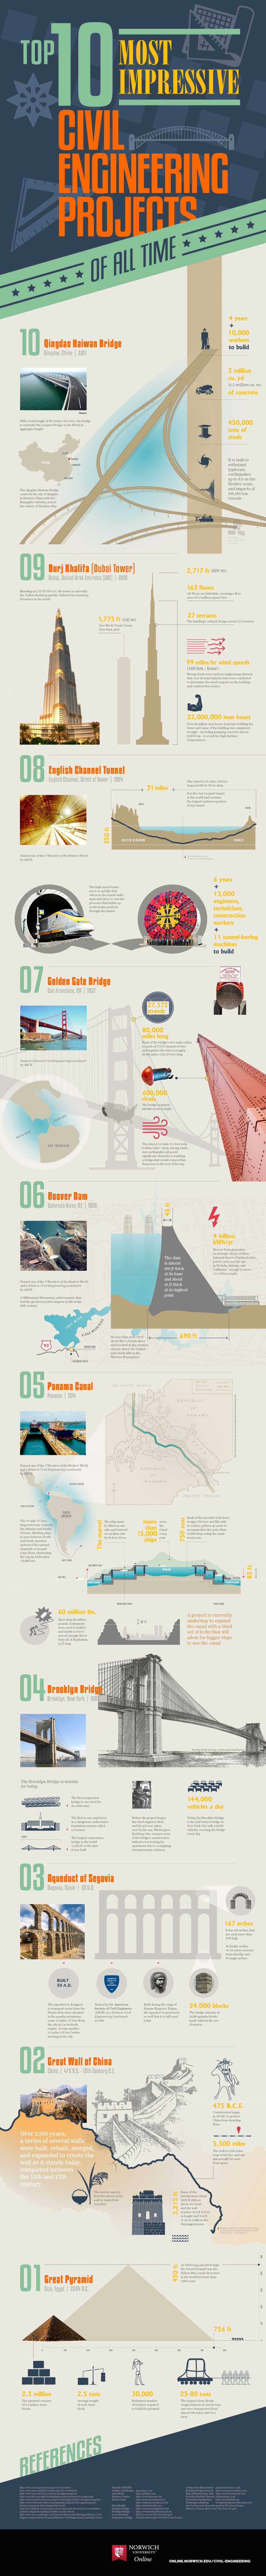 ten impressive ce projects infographic image